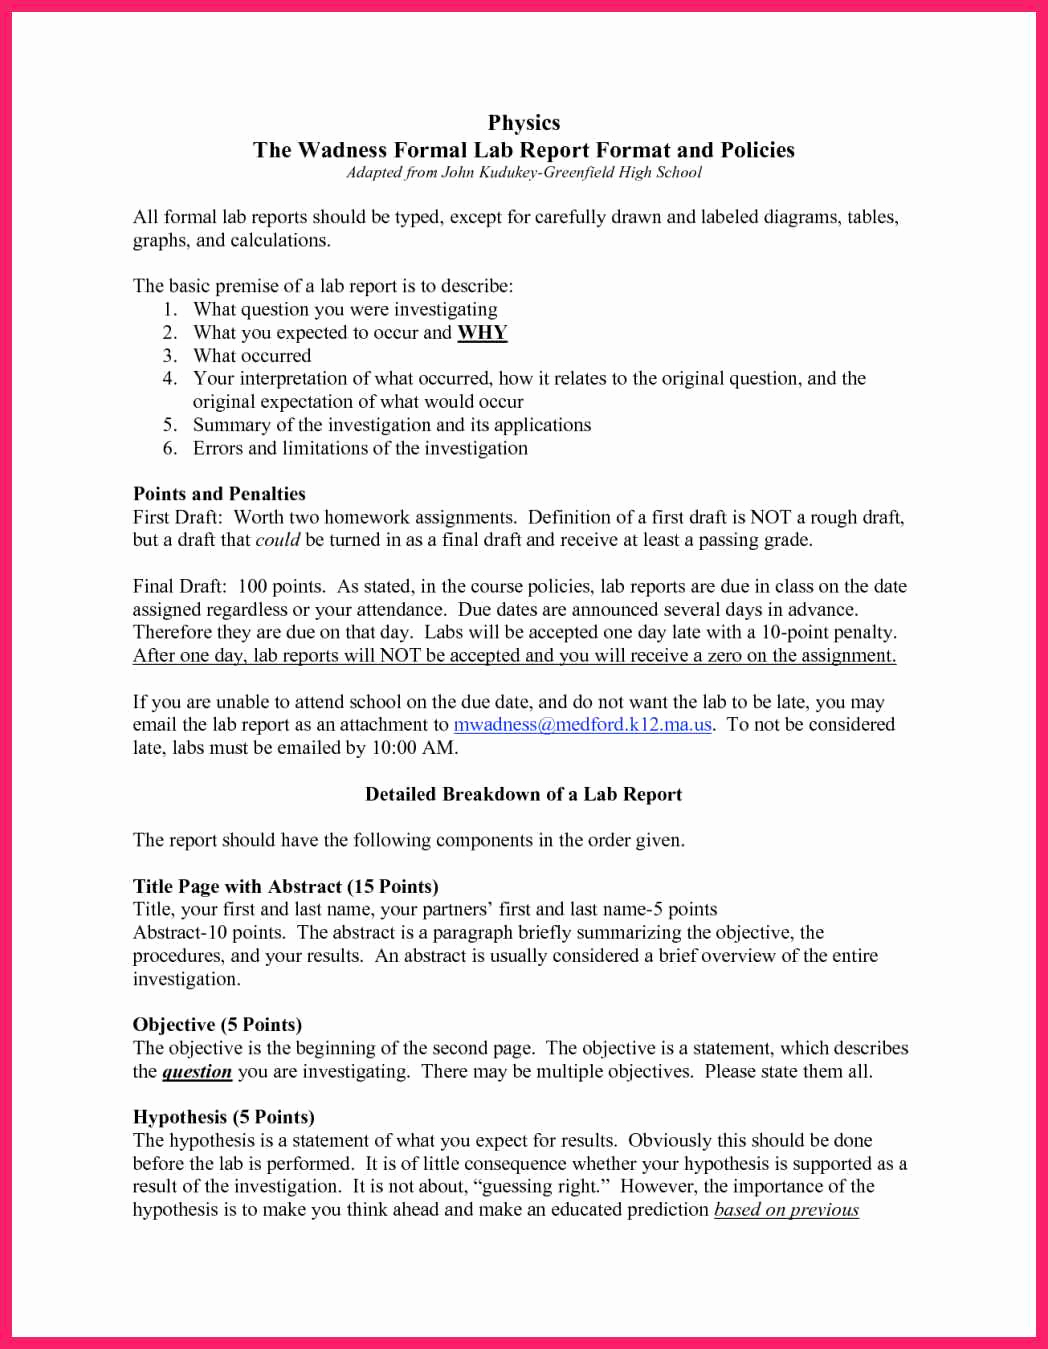 Formal Lab Report Template Unique formal Lab Report Template